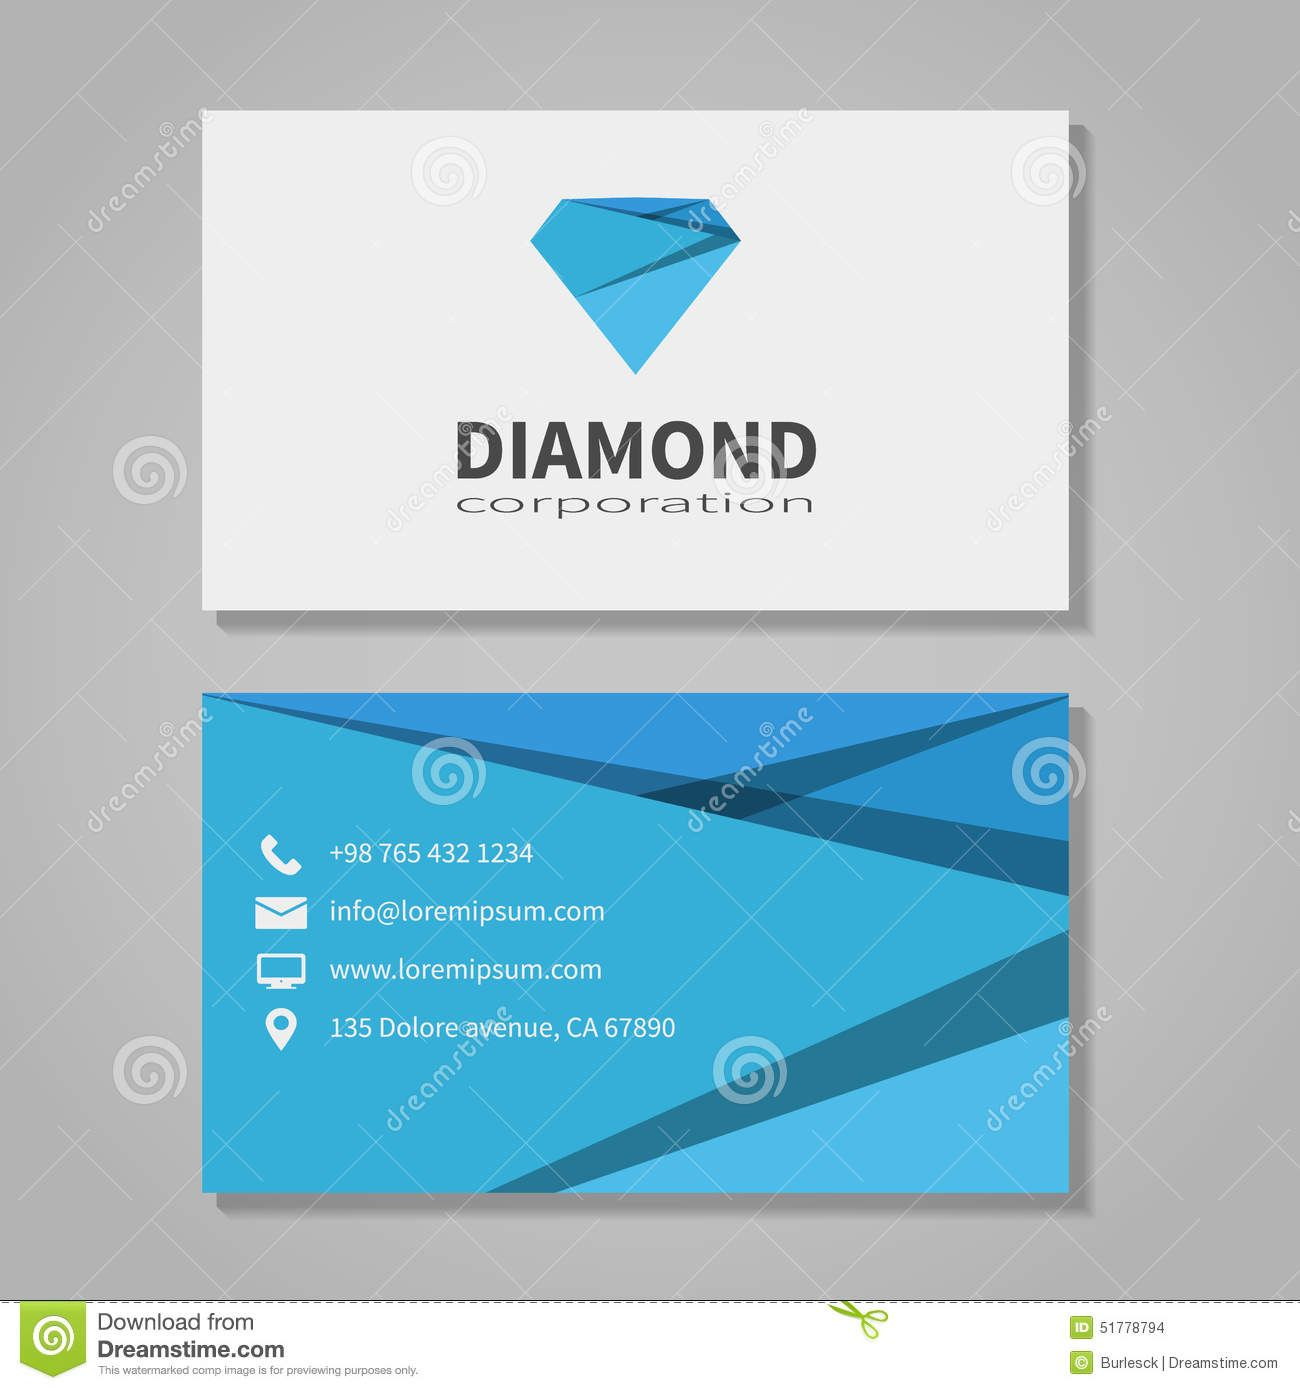 Office business cards etamemibawa office business cards cheaphphosting Images